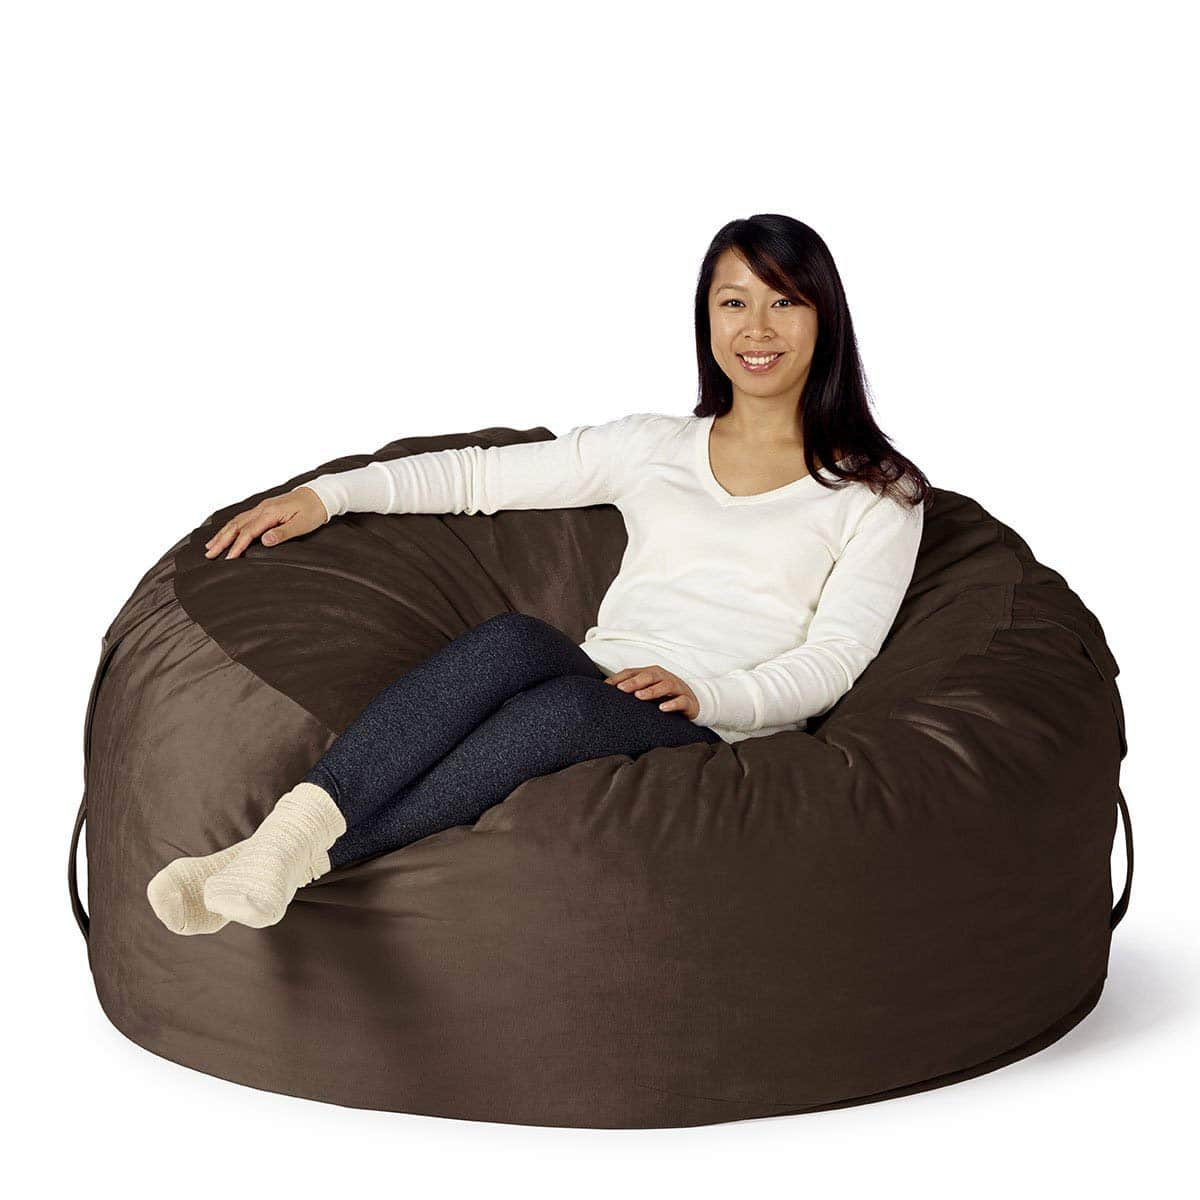 Best Bean Bag Chairs Top 10 Bean Bag Brands And Reviews